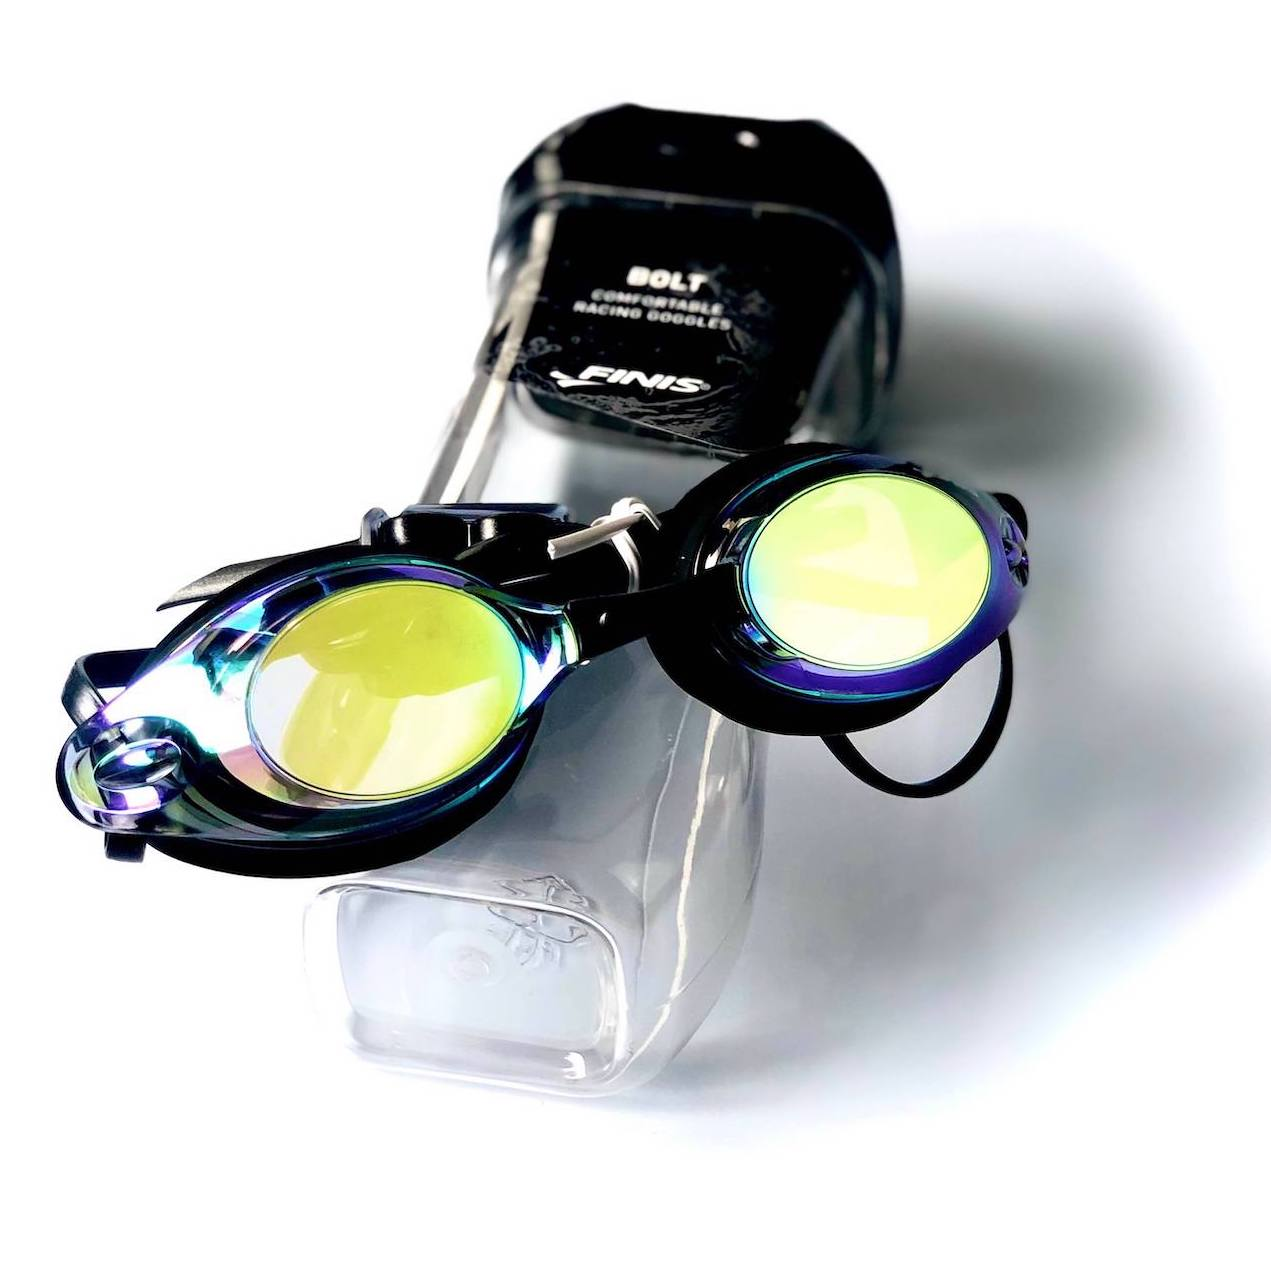 Bolt competition swimming goggles are ideal for racing and training